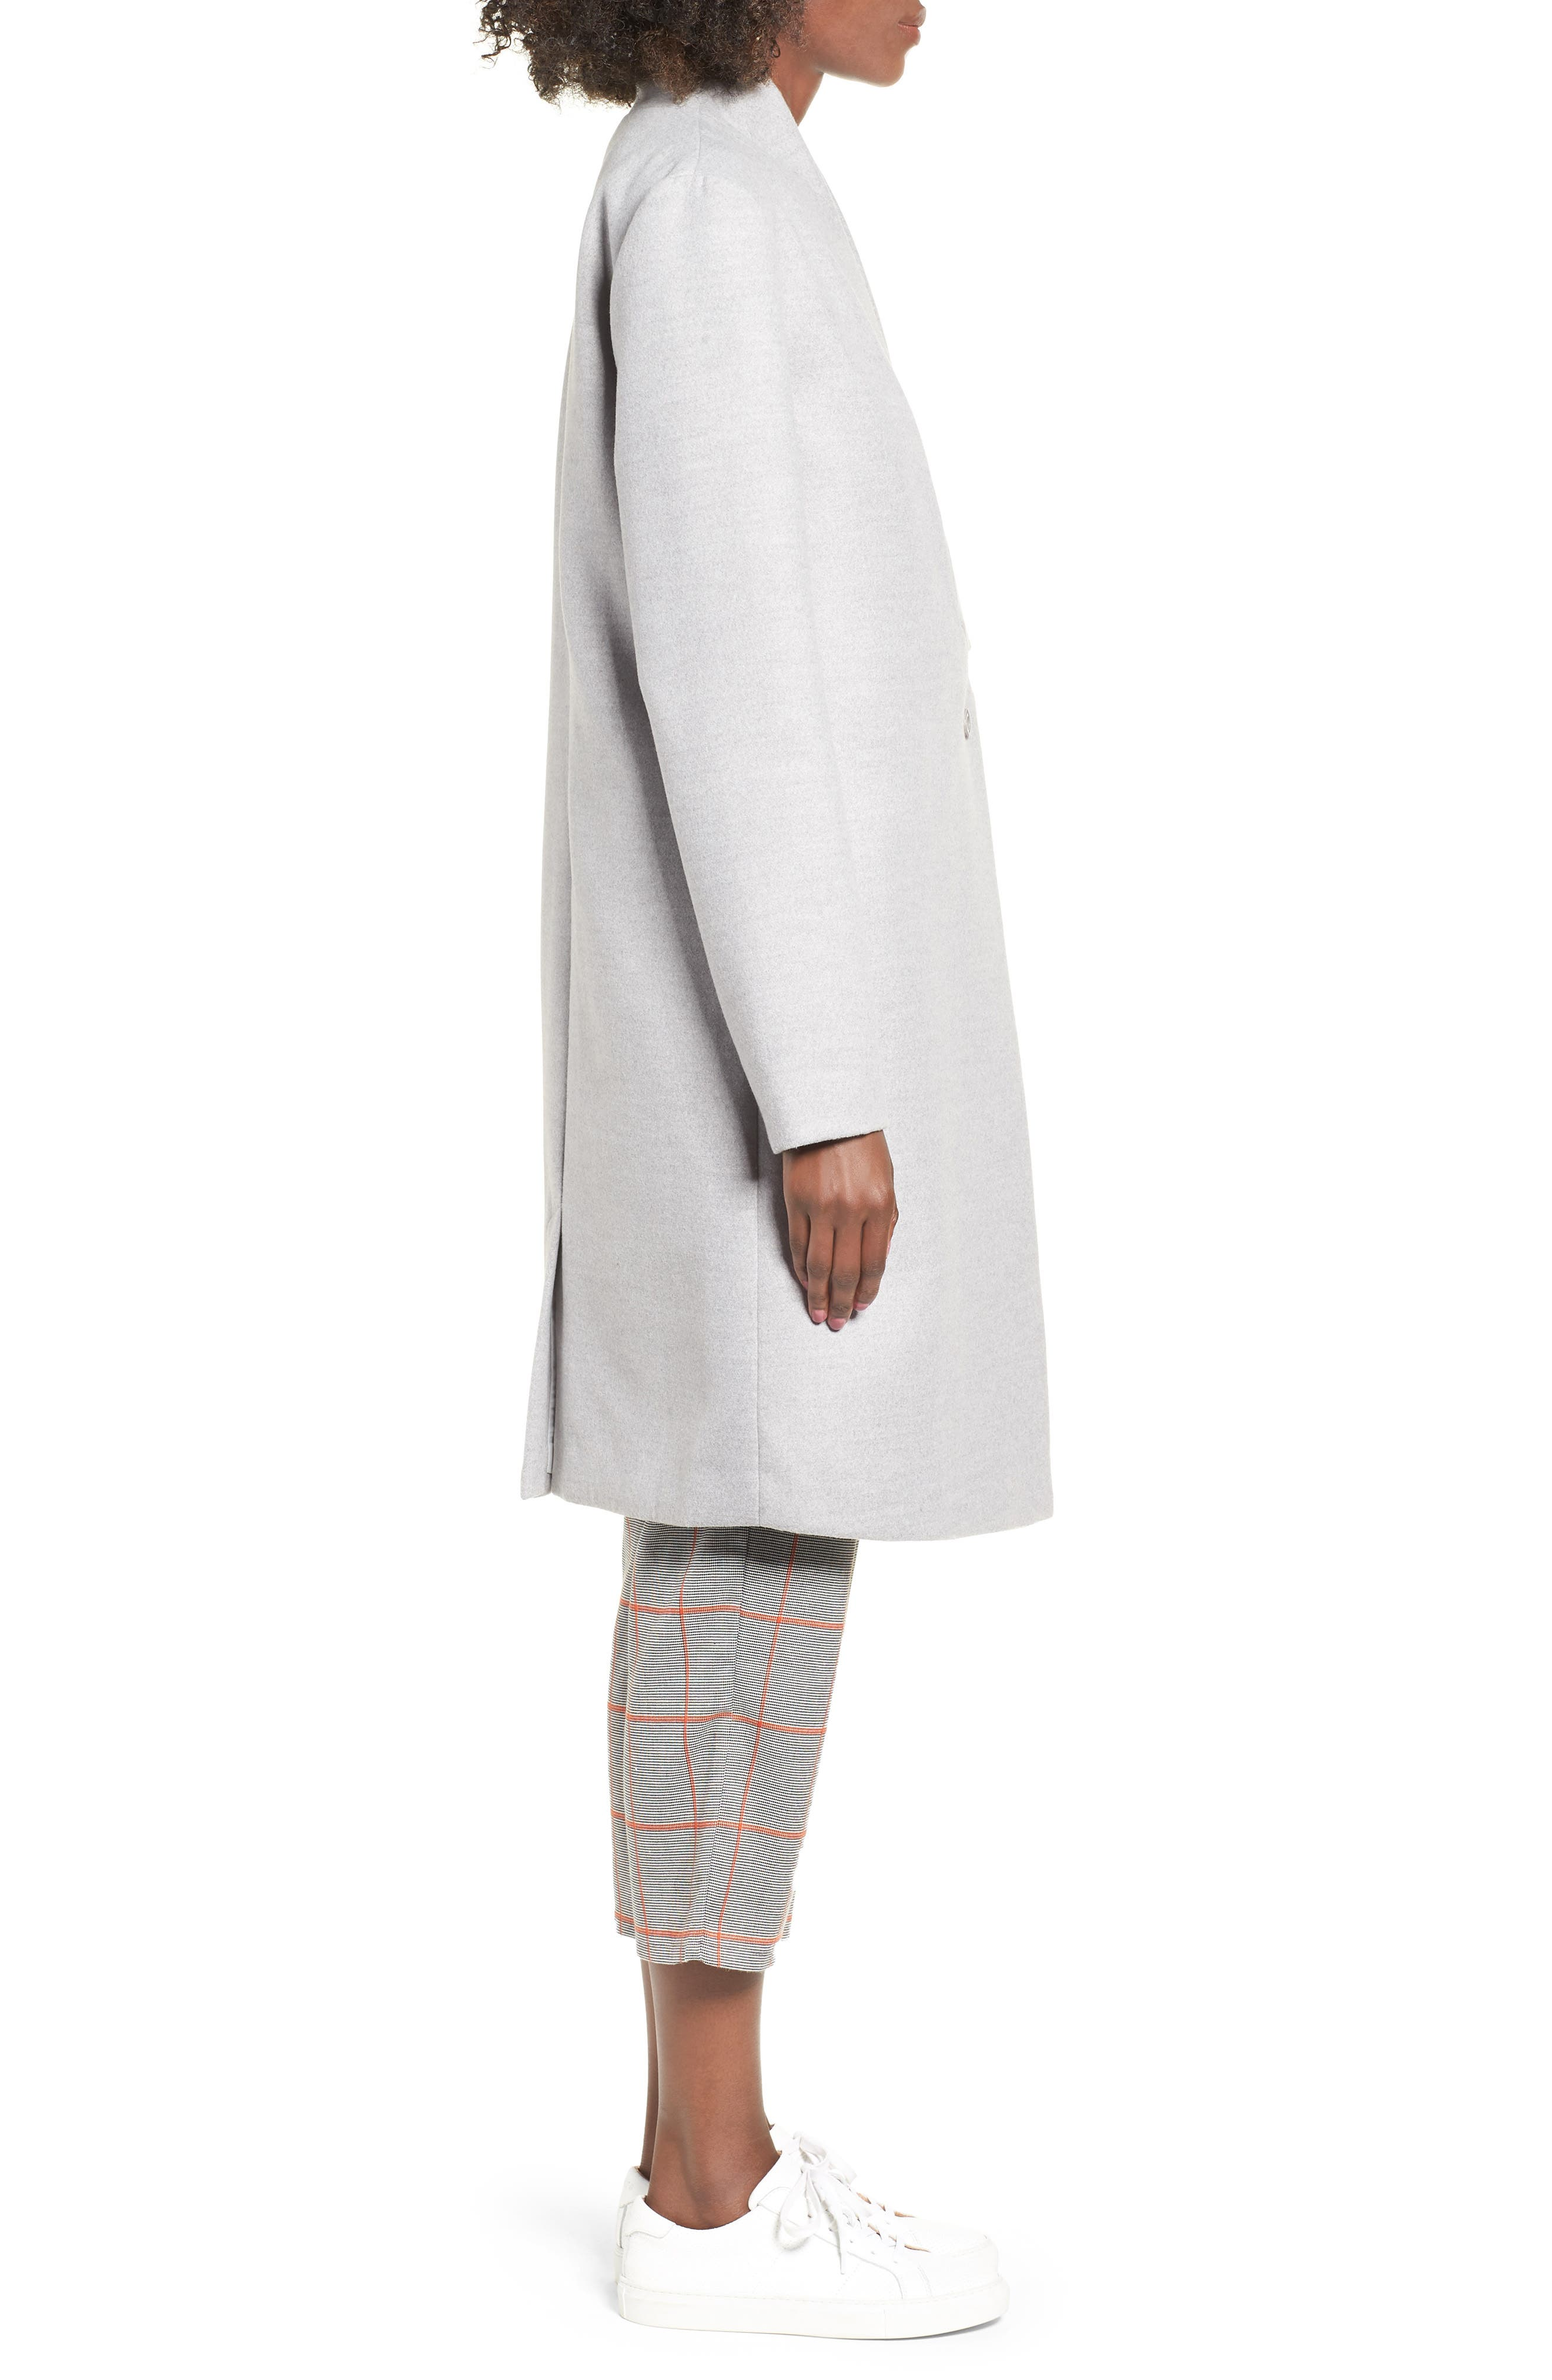 Seminar Coat,                             Alternate thumbnail 3, color,                             GREY MARLE